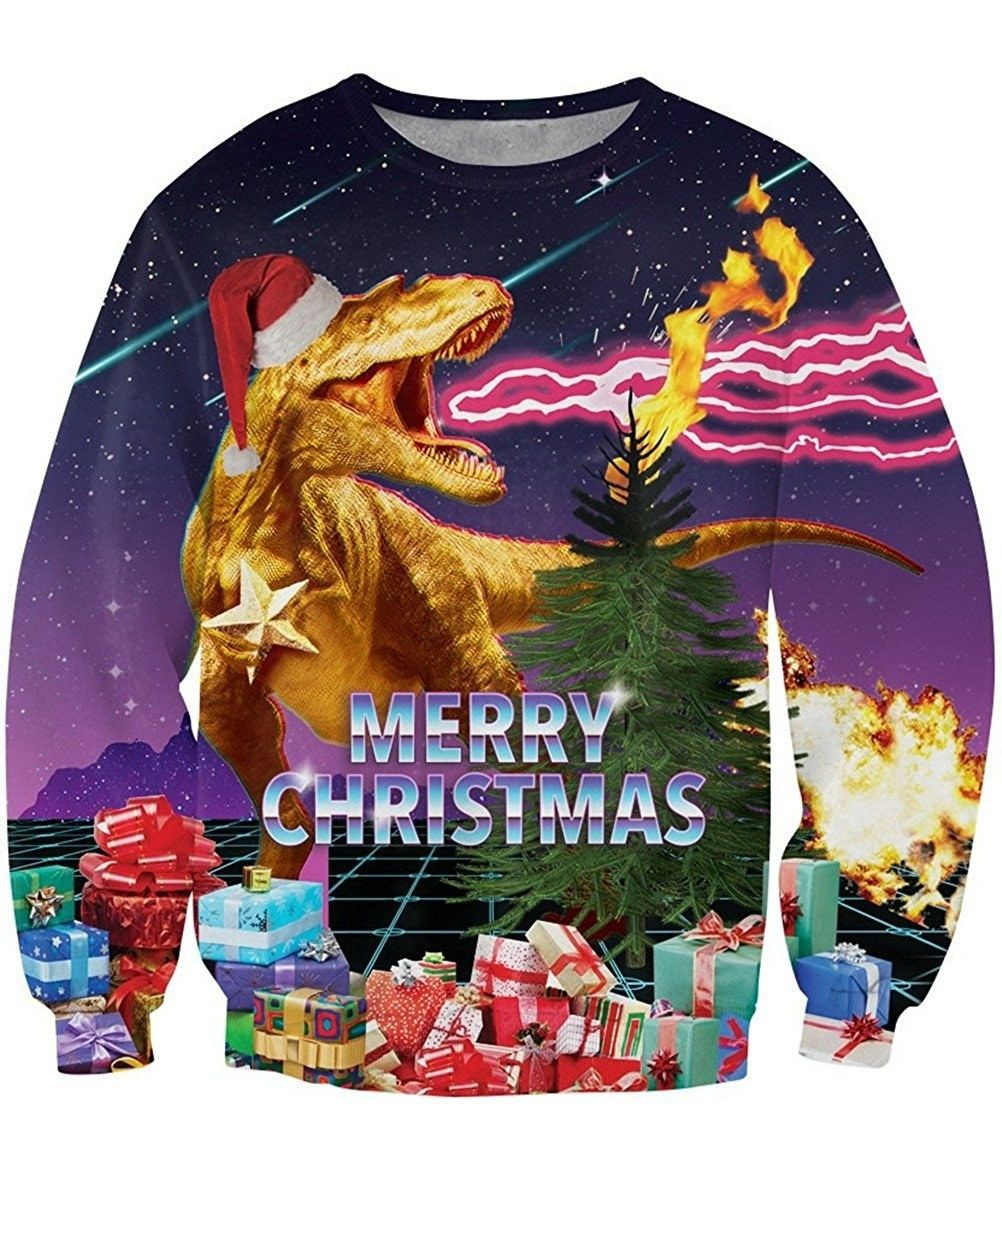 086c7957 A Christmas sweatshirt that reminds us what this season is really ...